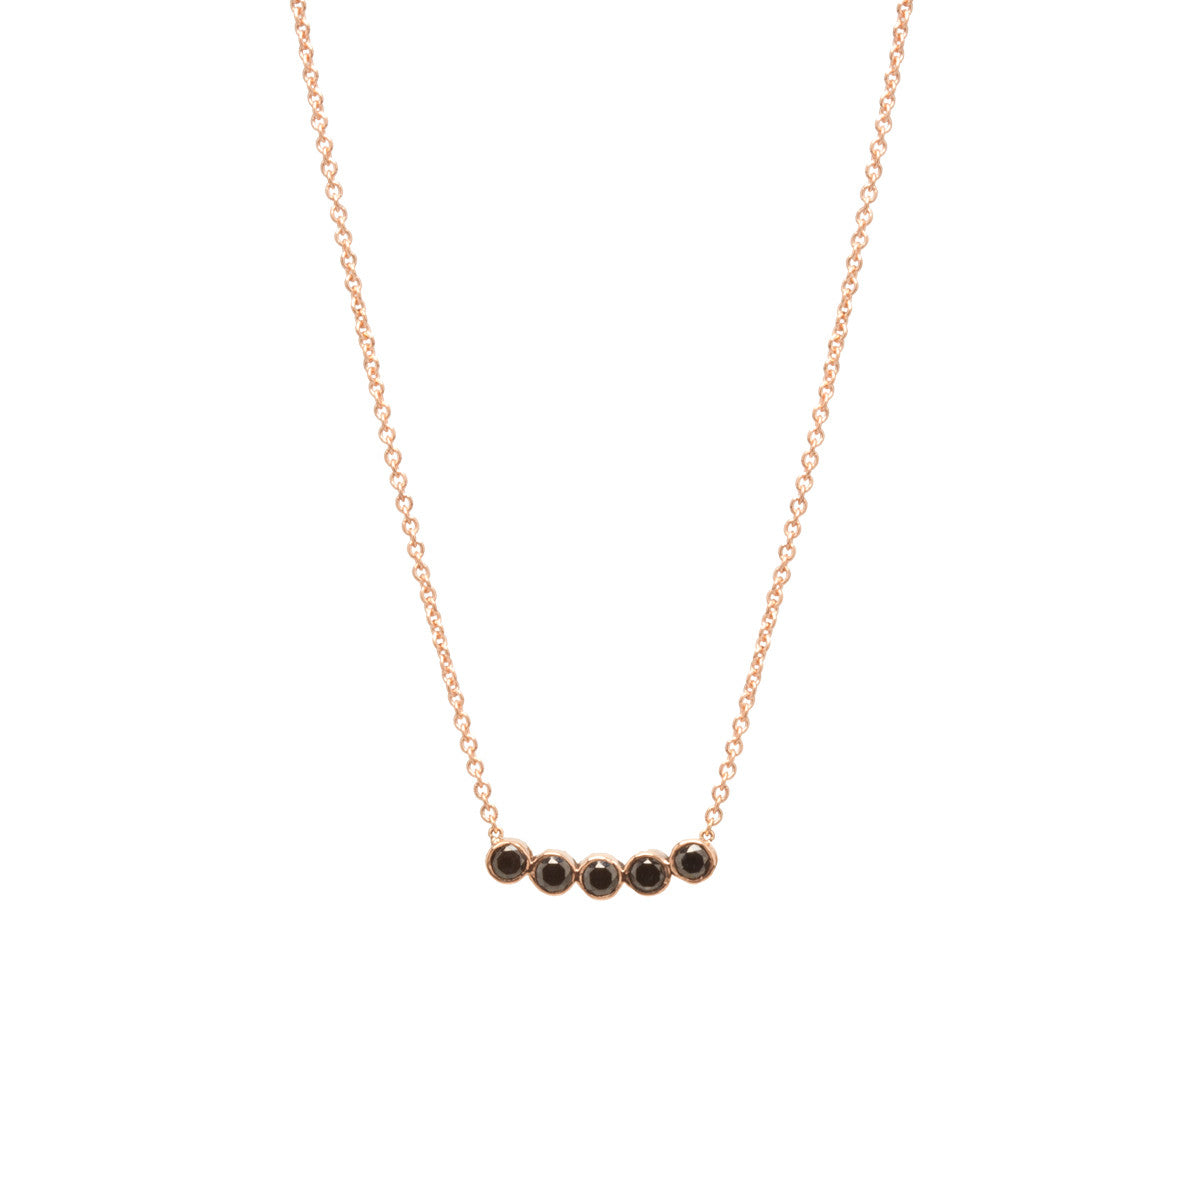 Zoë Chicco 14kt Rose Gold Five Black Diamond Necklace